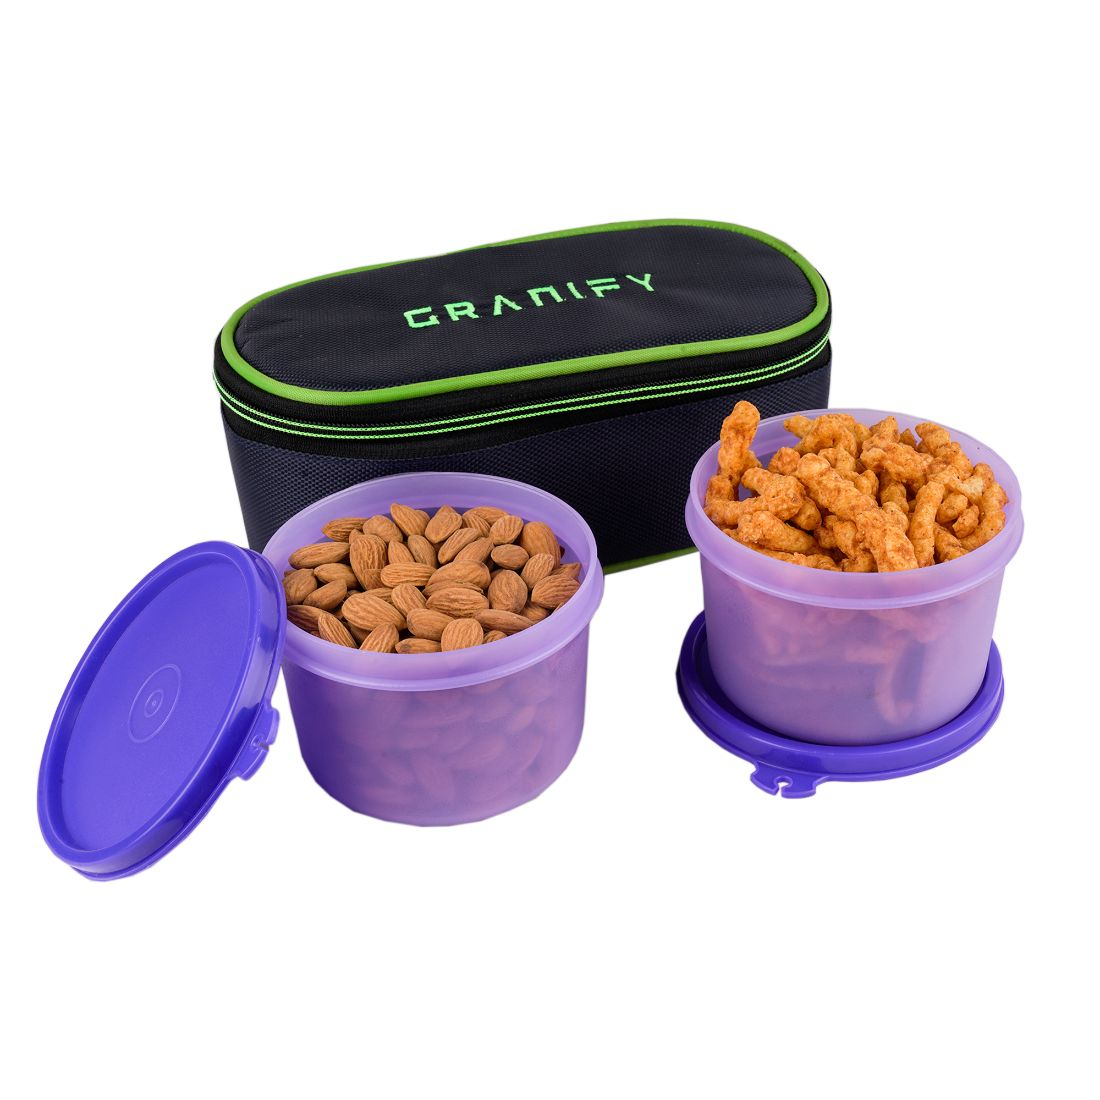 GRANIFY Lunch Box   2 Containers With Bag Cover   D